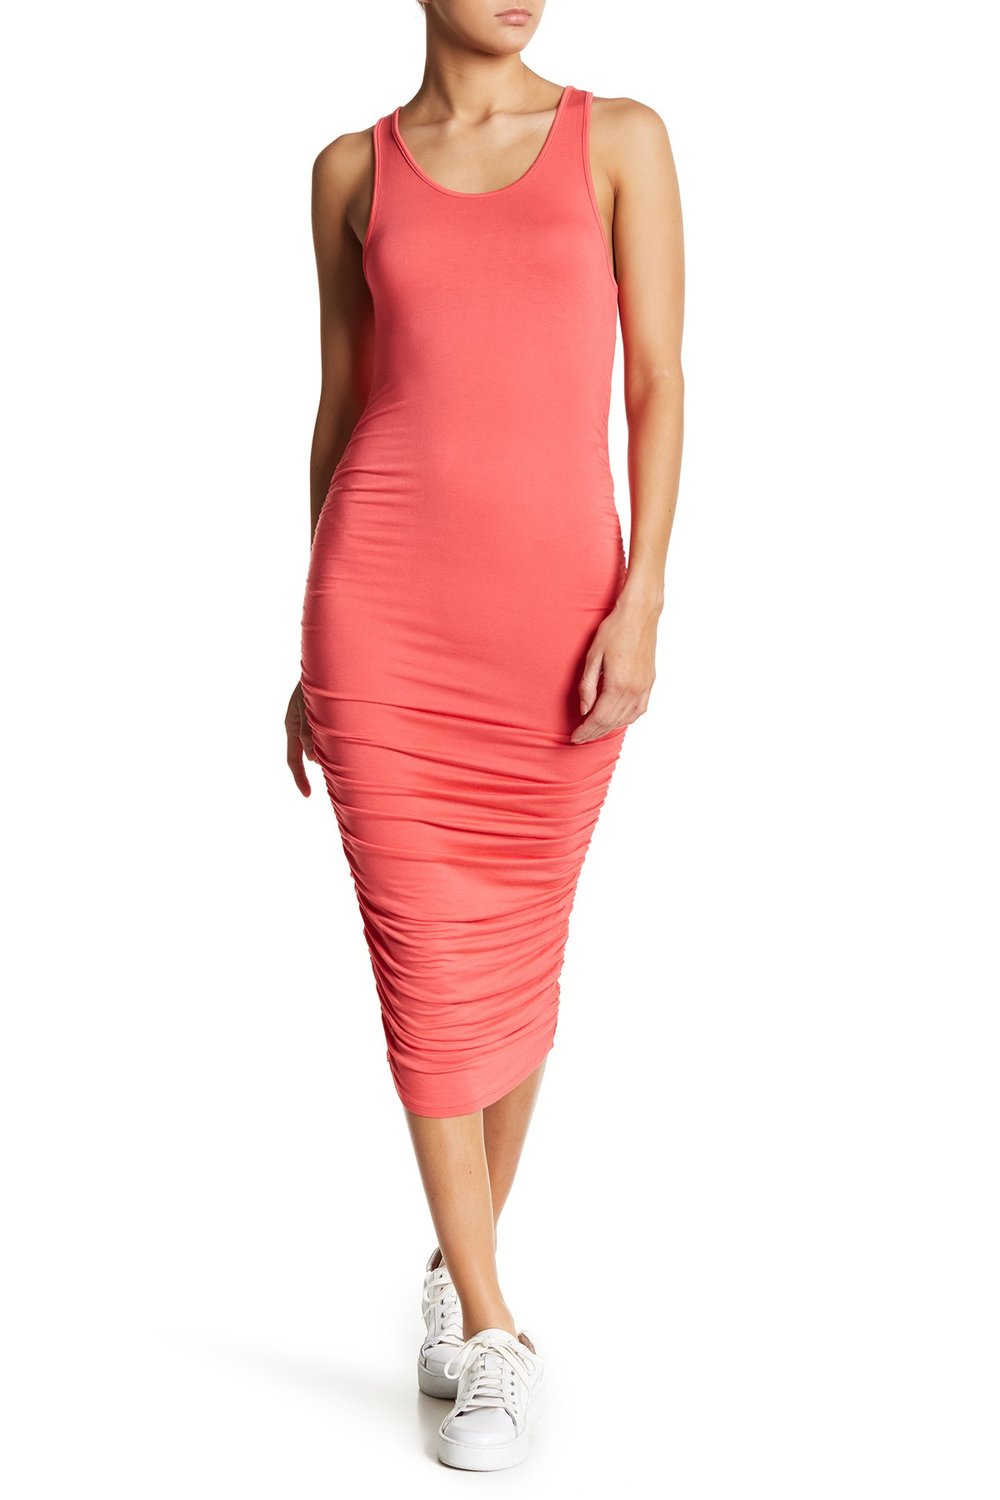 Yes! A great option for a woman who wants so show her shape- always a win for women with rectangle or hourlgass silhouettes. This effortless dress is super affordable, ideal for traveling and just right for layering, too.   PLANET GOLD Sleeveless Side Ruched Midi Dress. Nordstrom Rack. Was: $39. Now: $16.